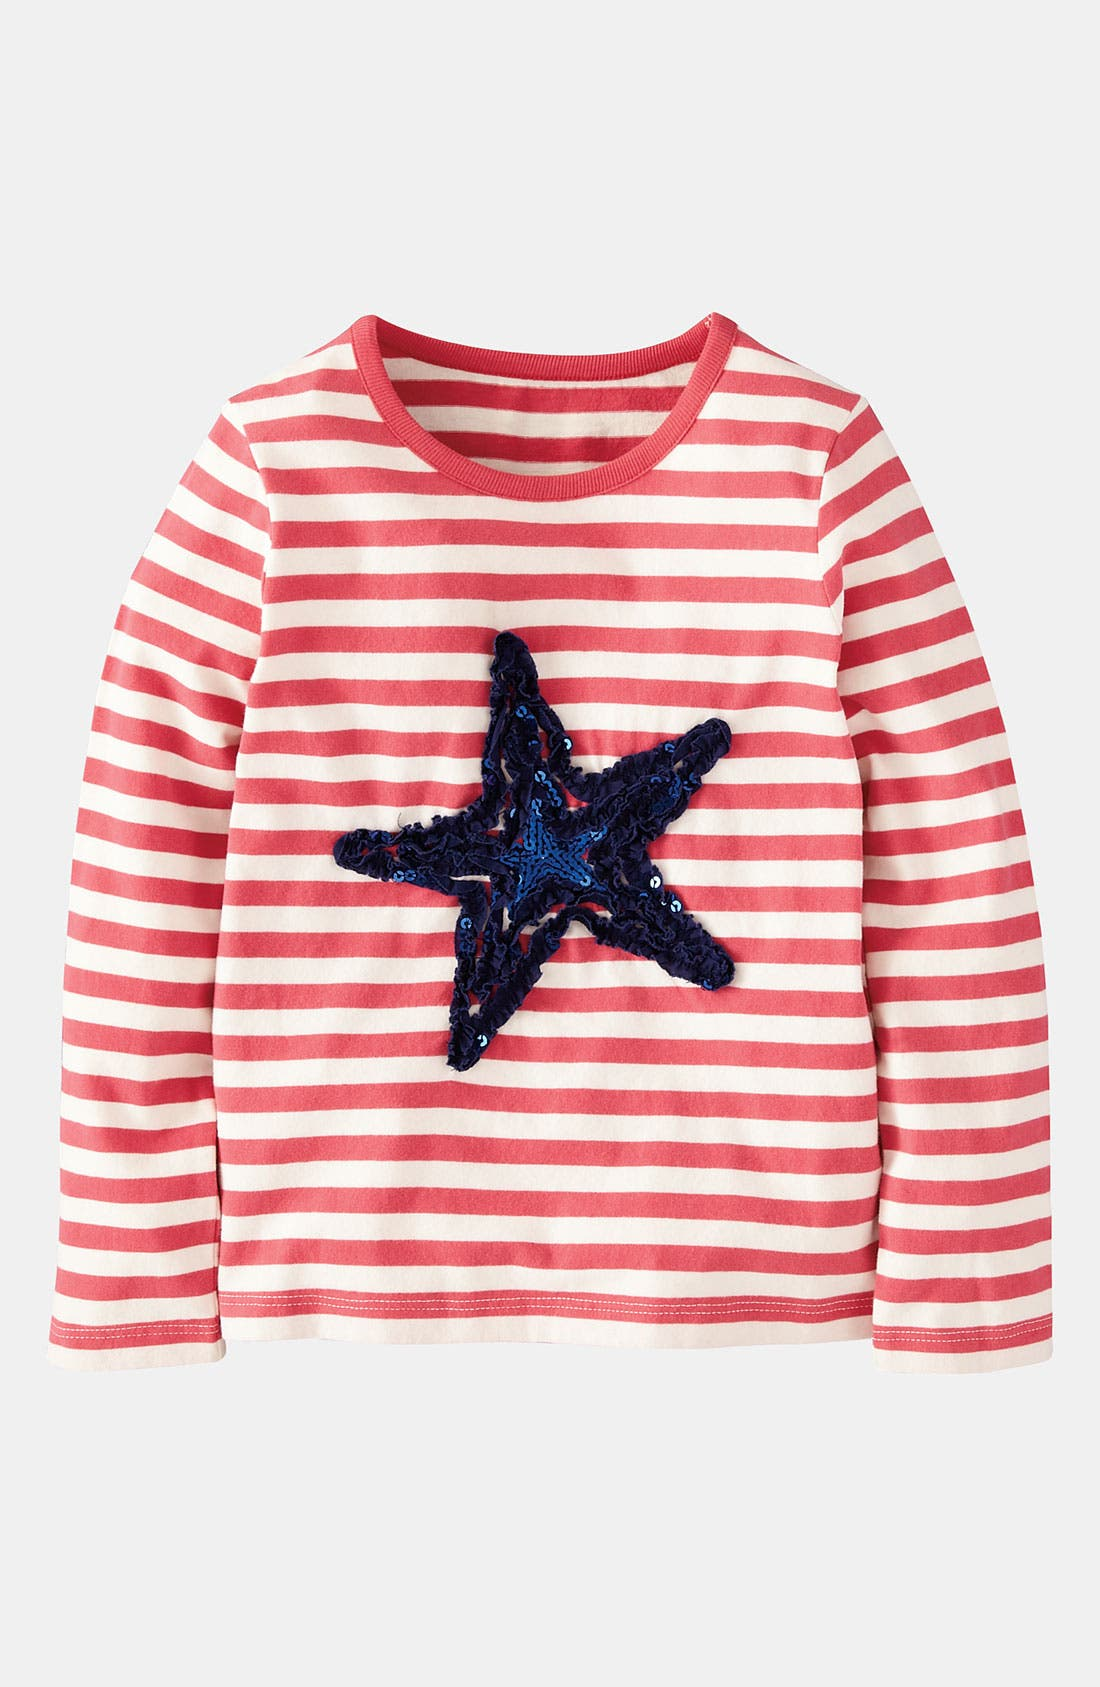 Alternate Image 1 Selected - Mini Boden 'Stripe & Sparkle' Tee (Little Girls & Big Girls)